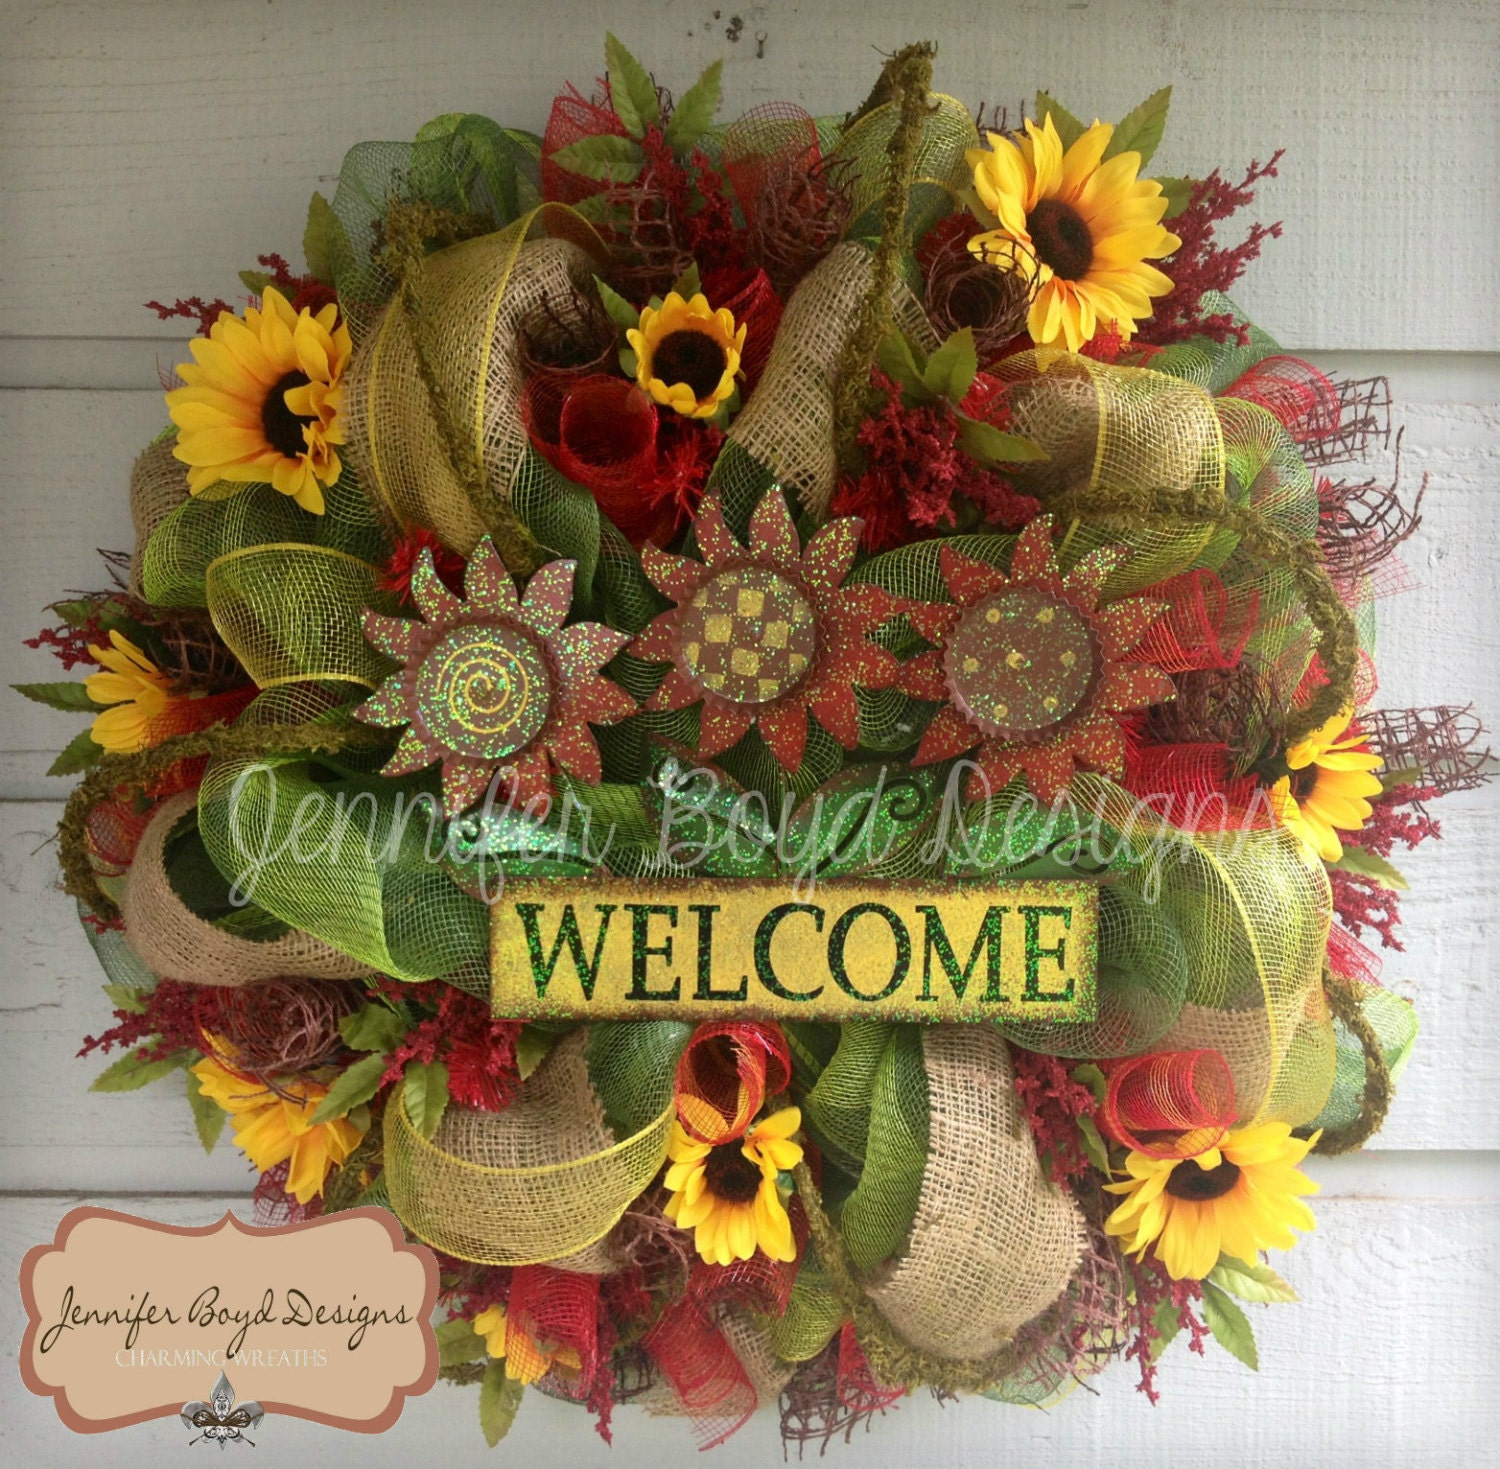 Sunflower Mesh Wreath With Welcome Sign Sunflowers Moss